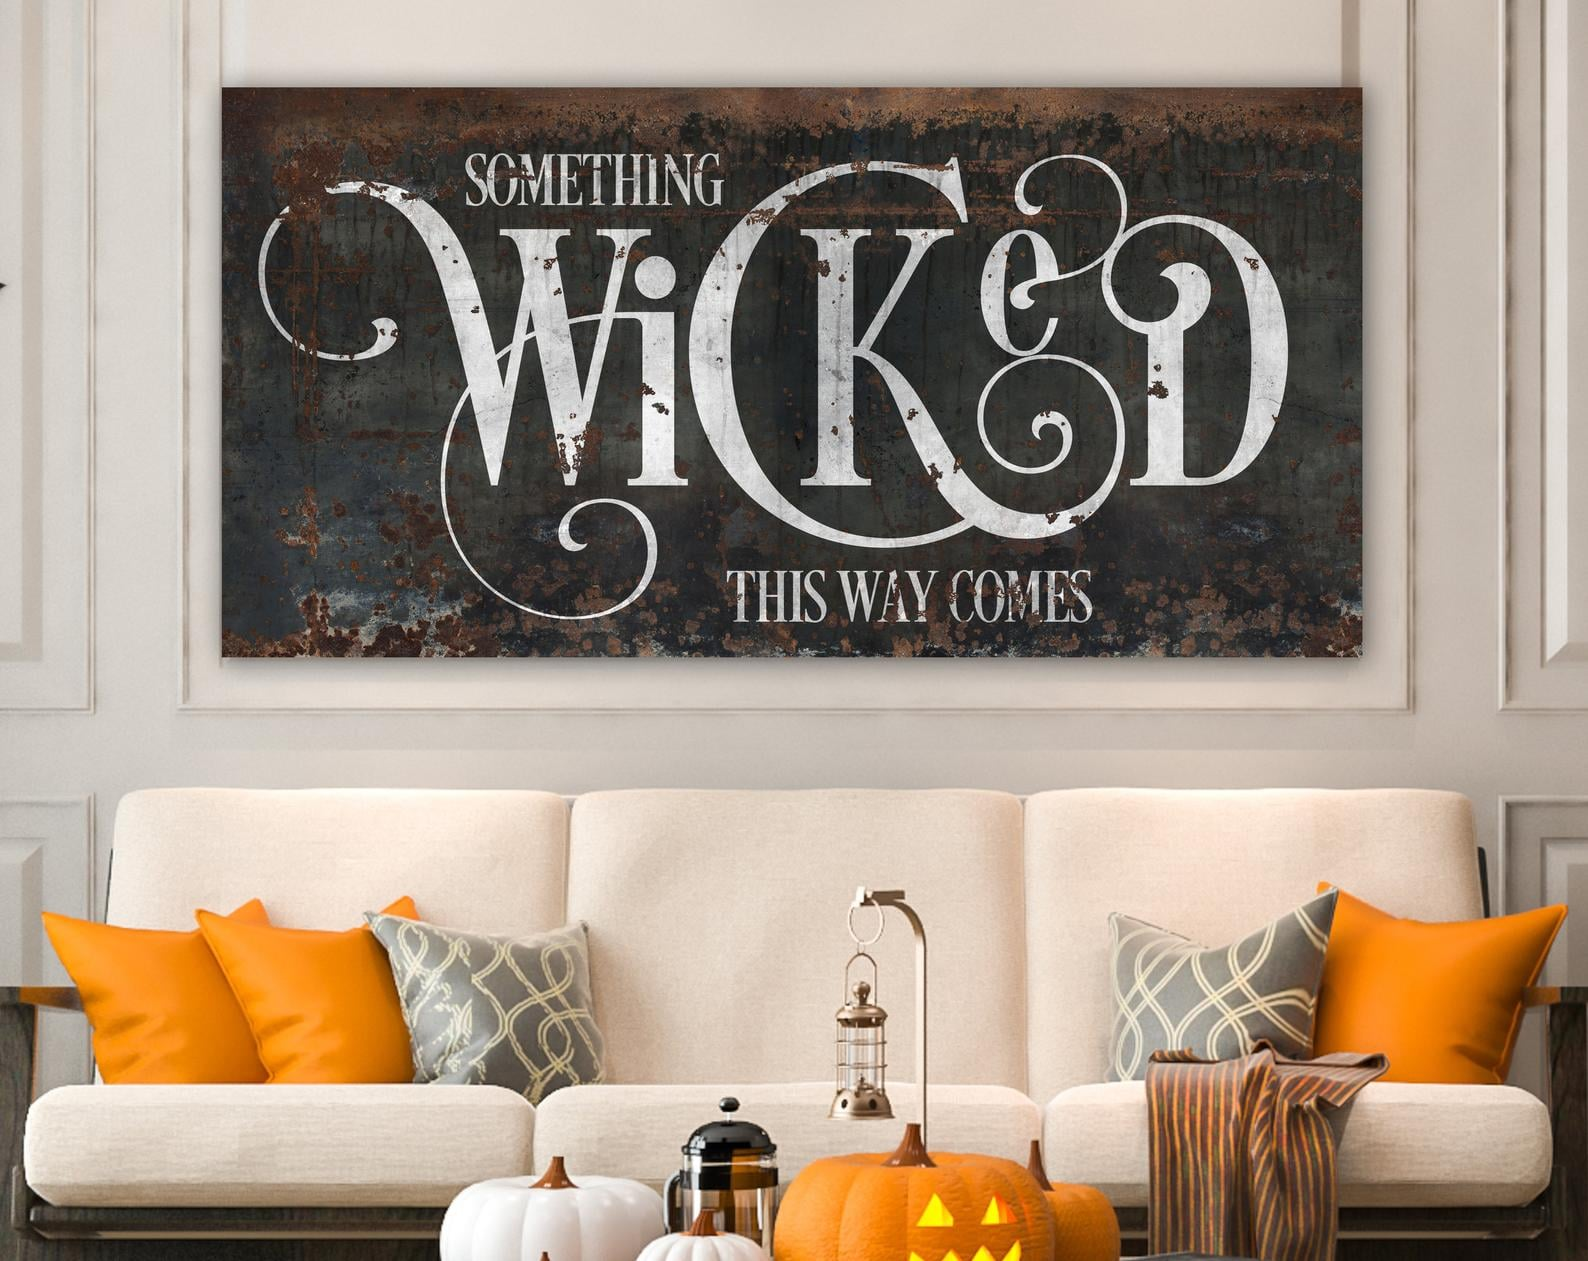 Best Halloween Decor From Etsy 2020